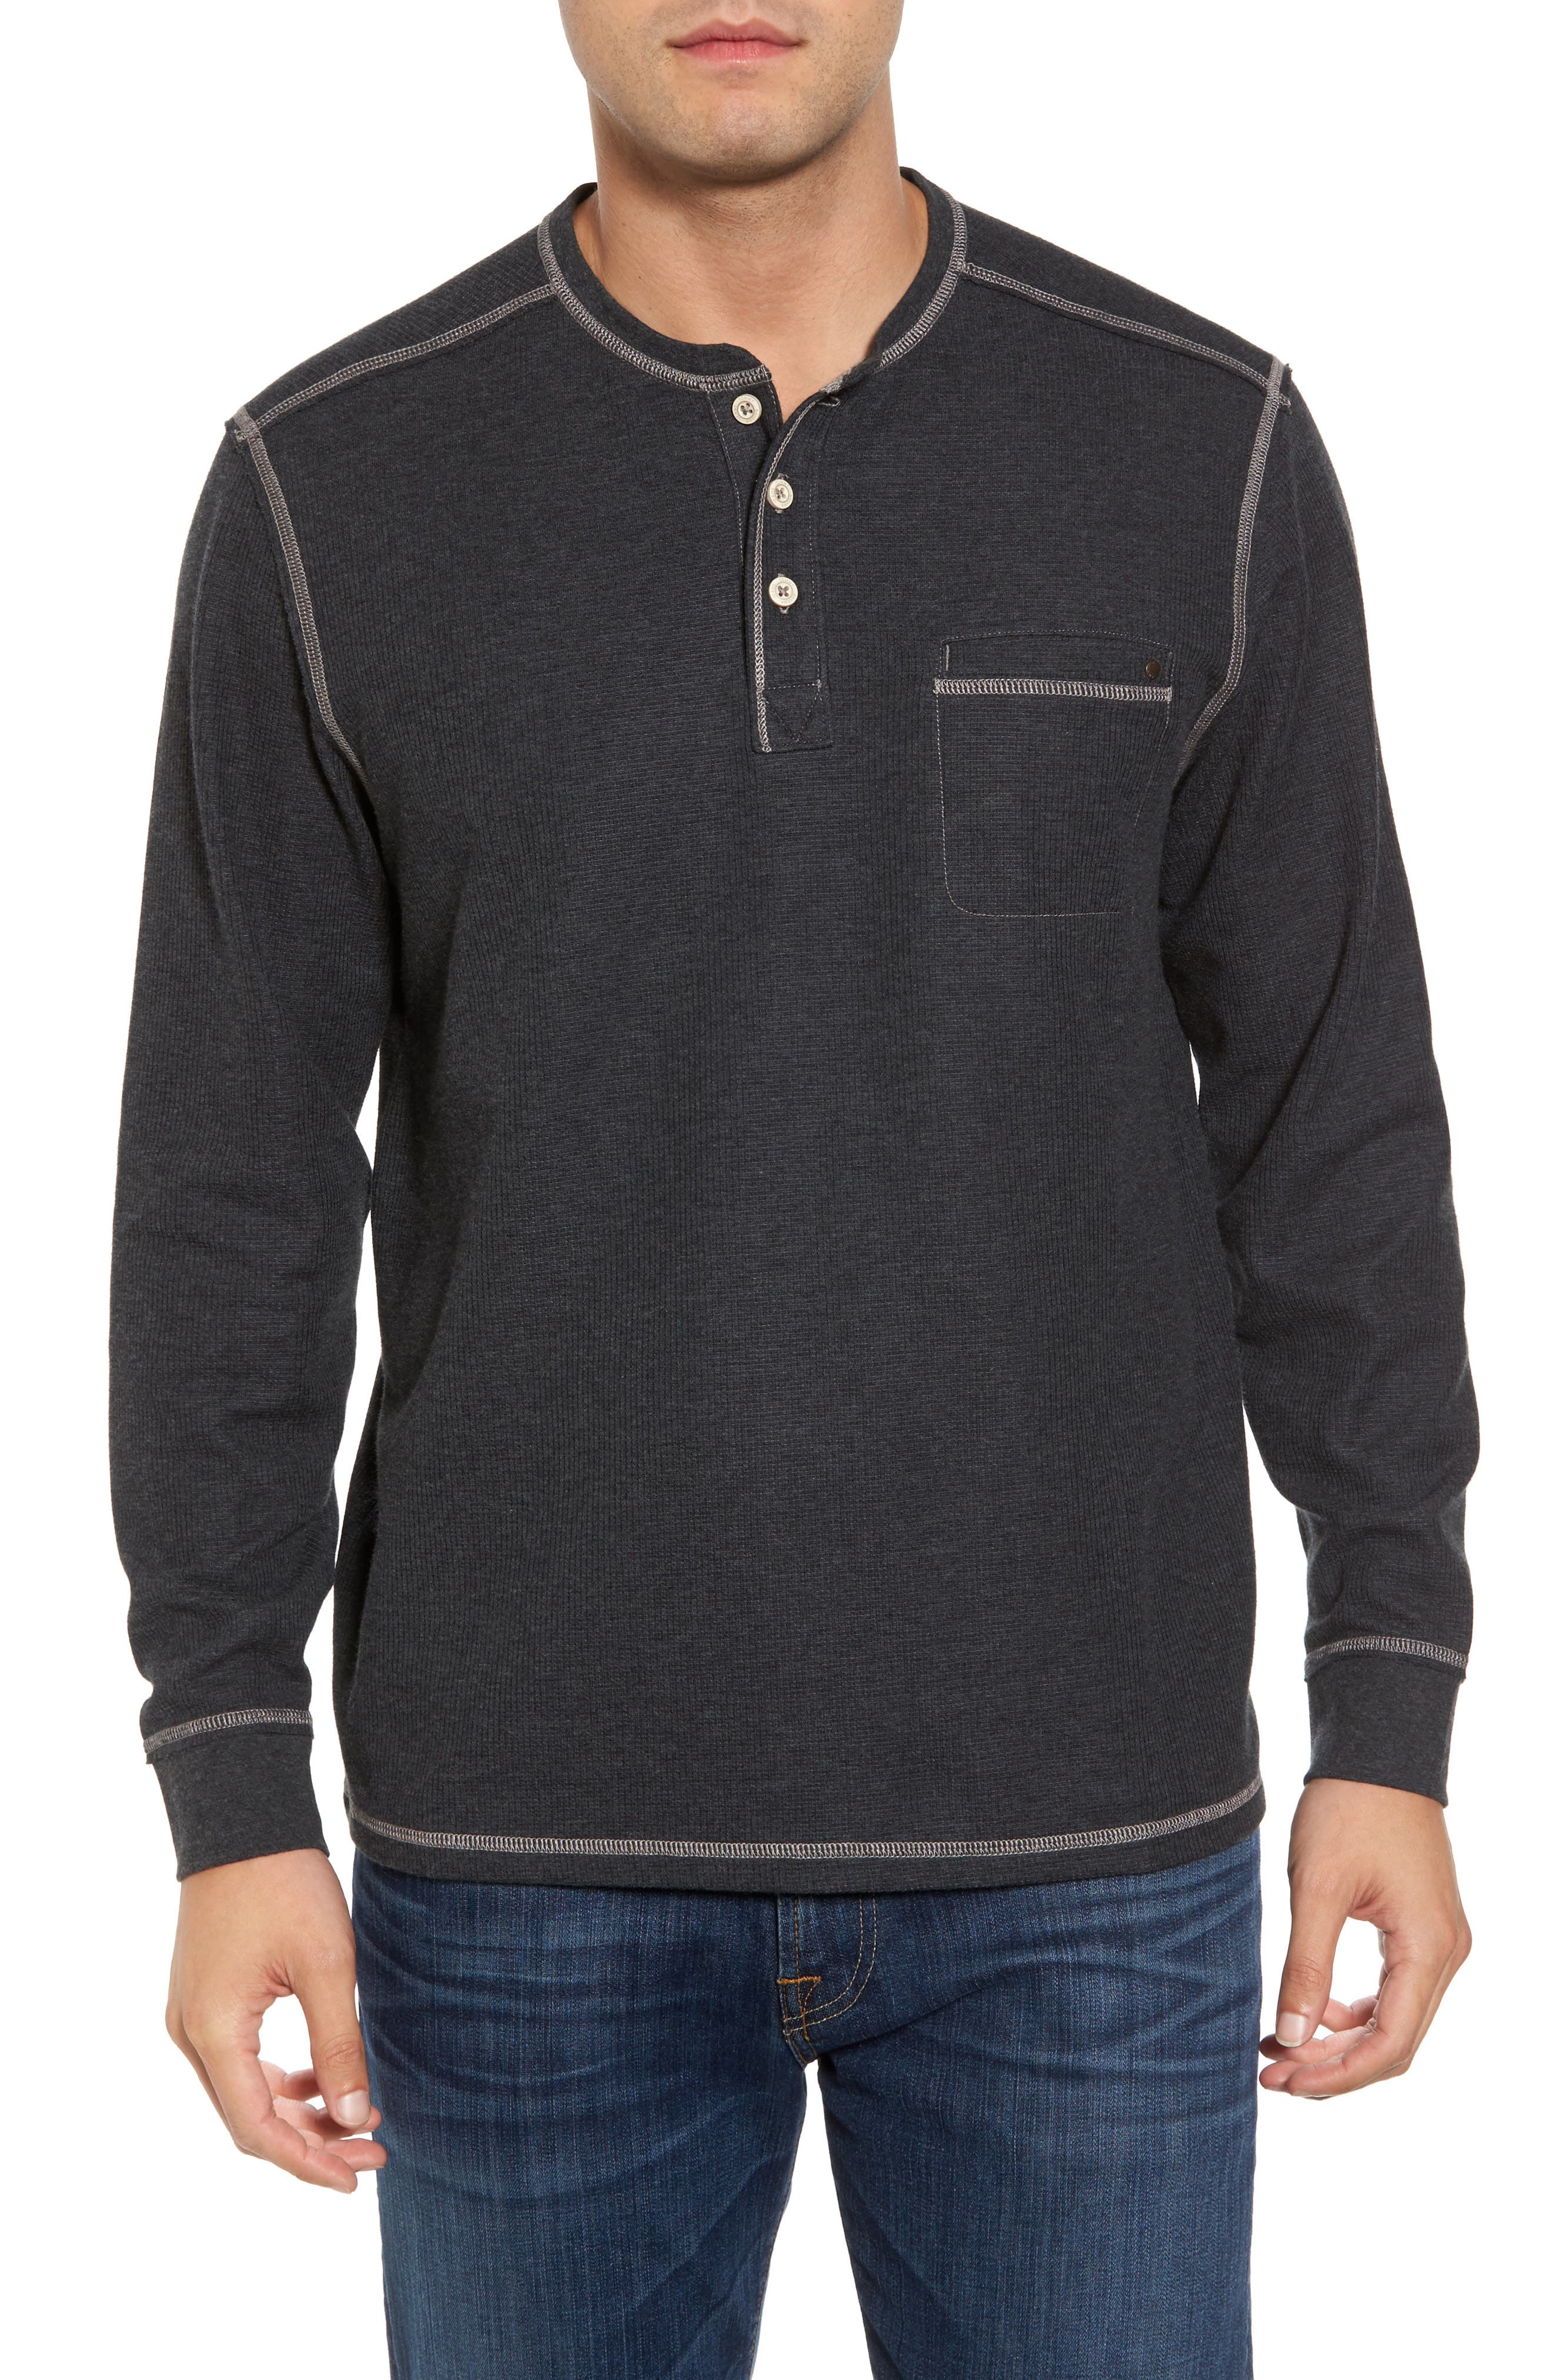 Island Thermal Standard Fit Thermal Henley,                             Main thumbnail 1, color,                             050